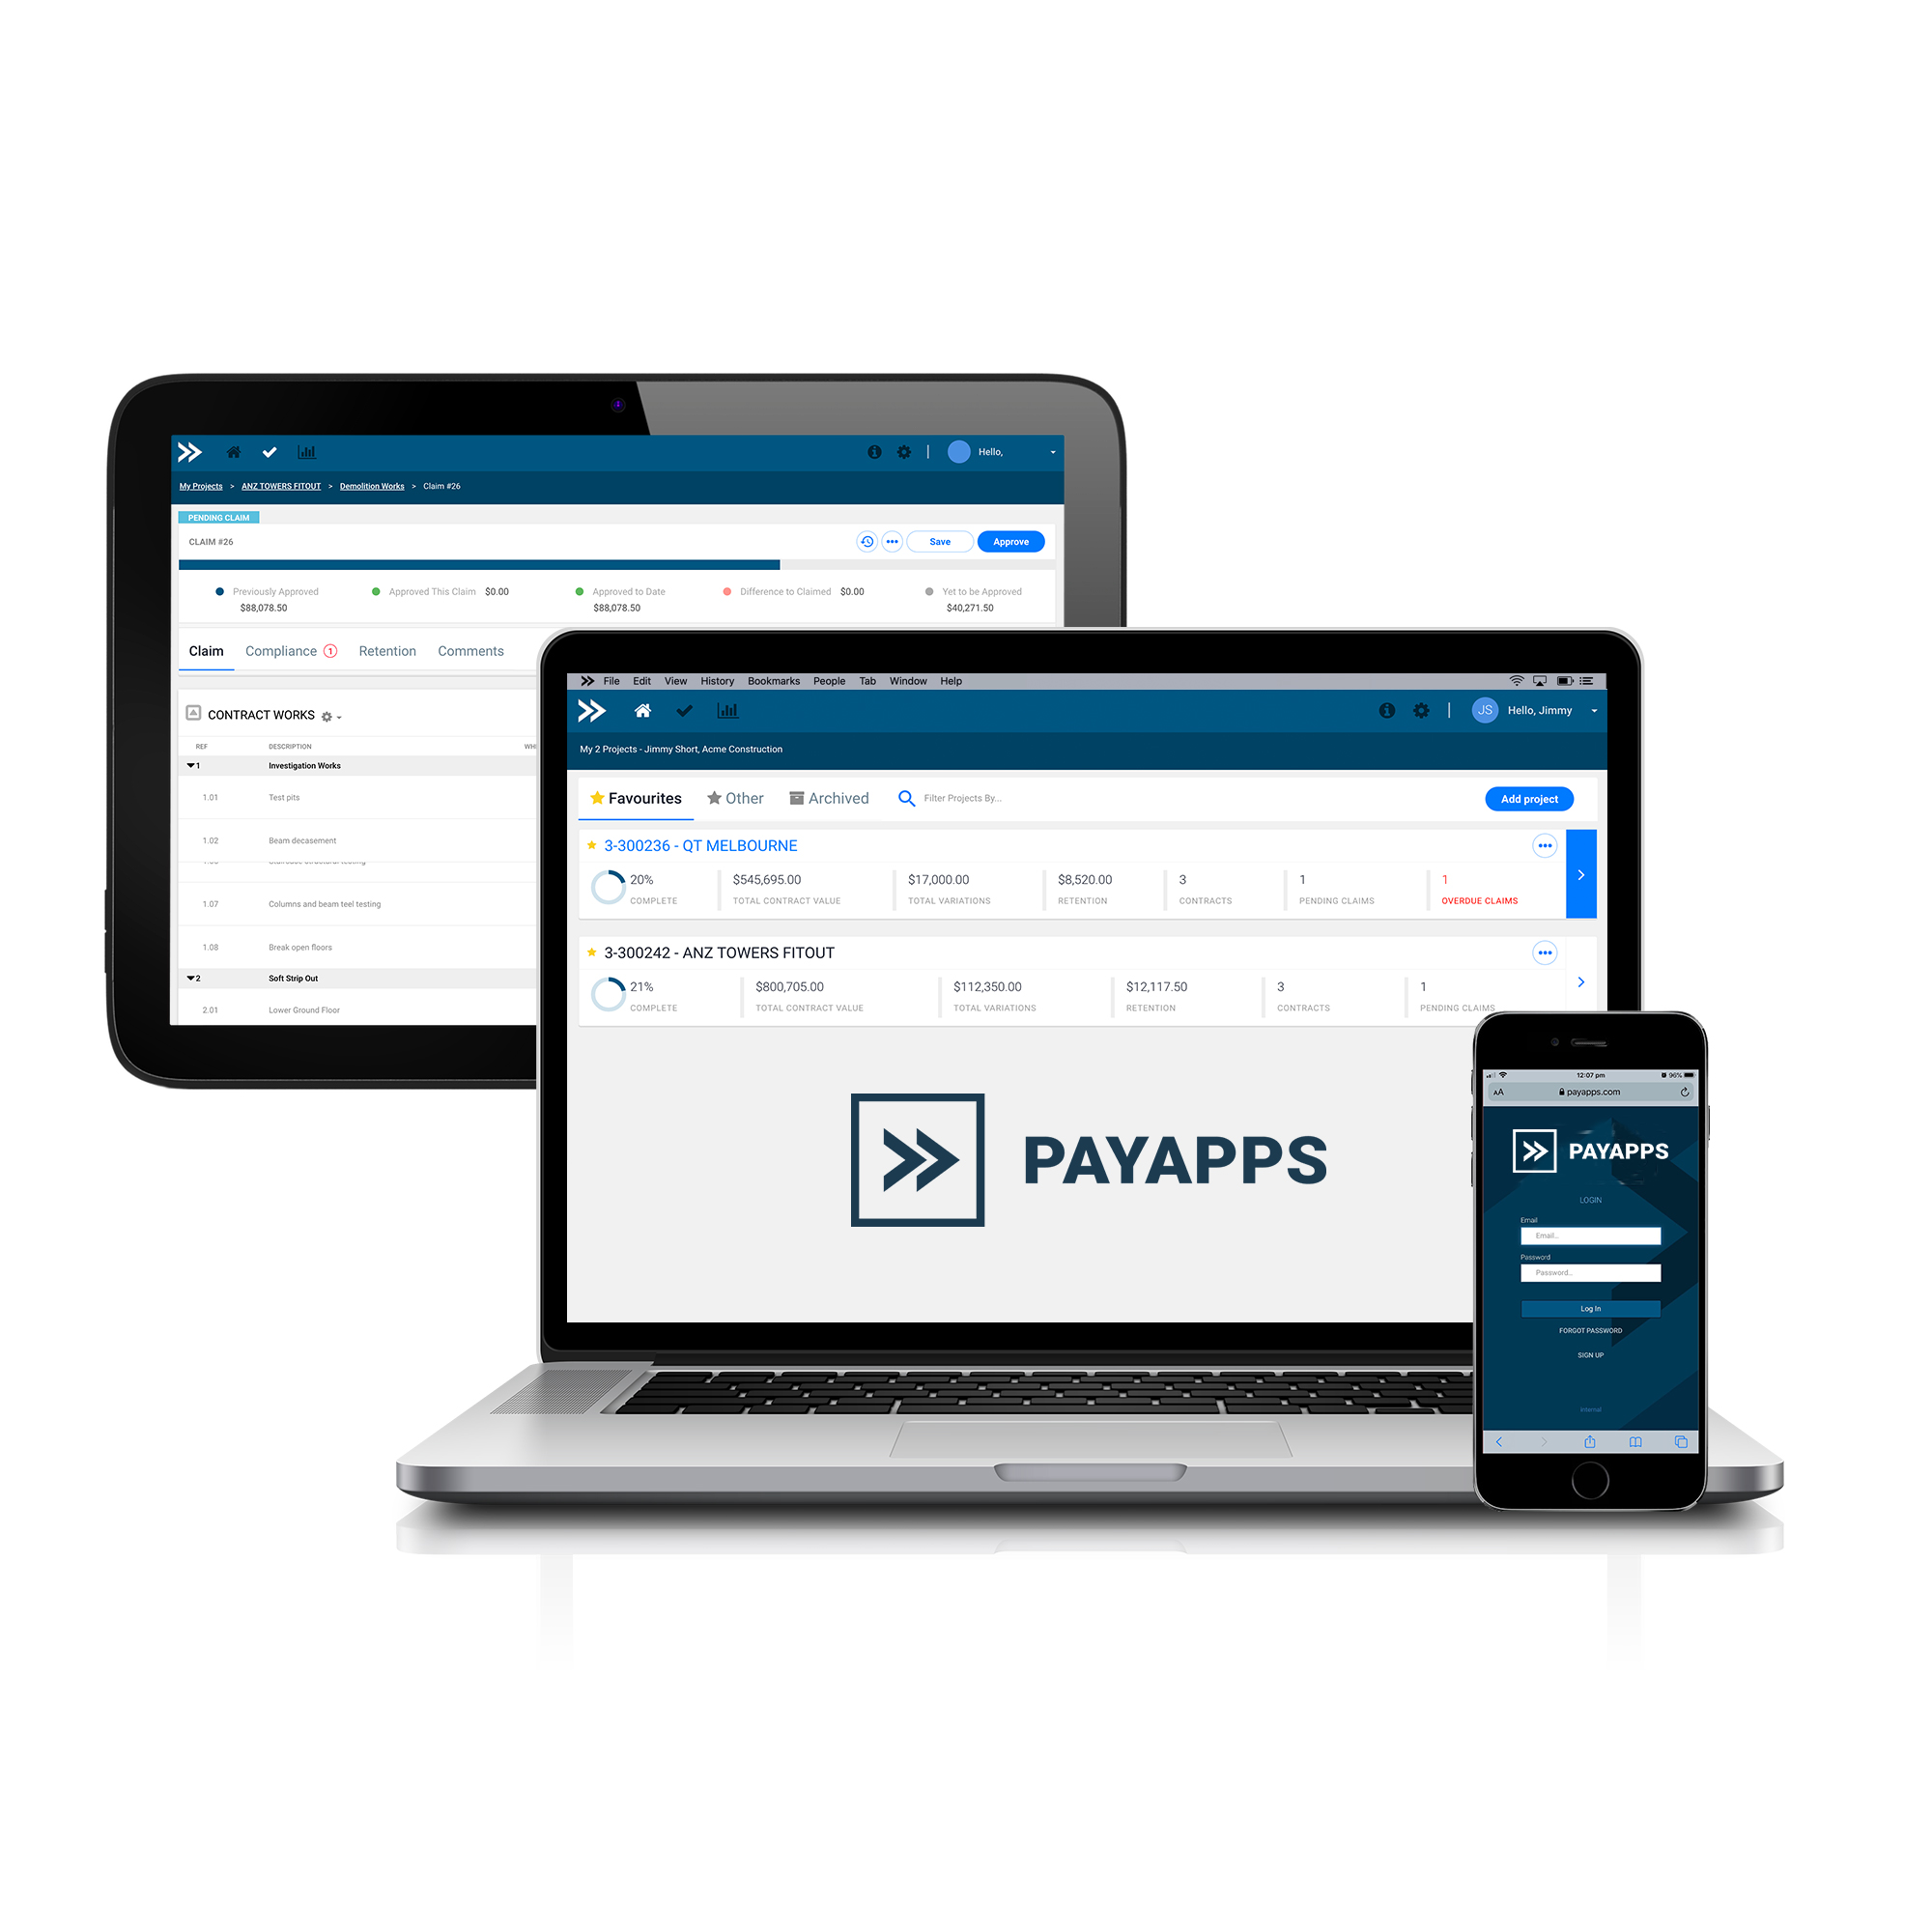 Laptop, tablet and mobiles showing  Payapps application